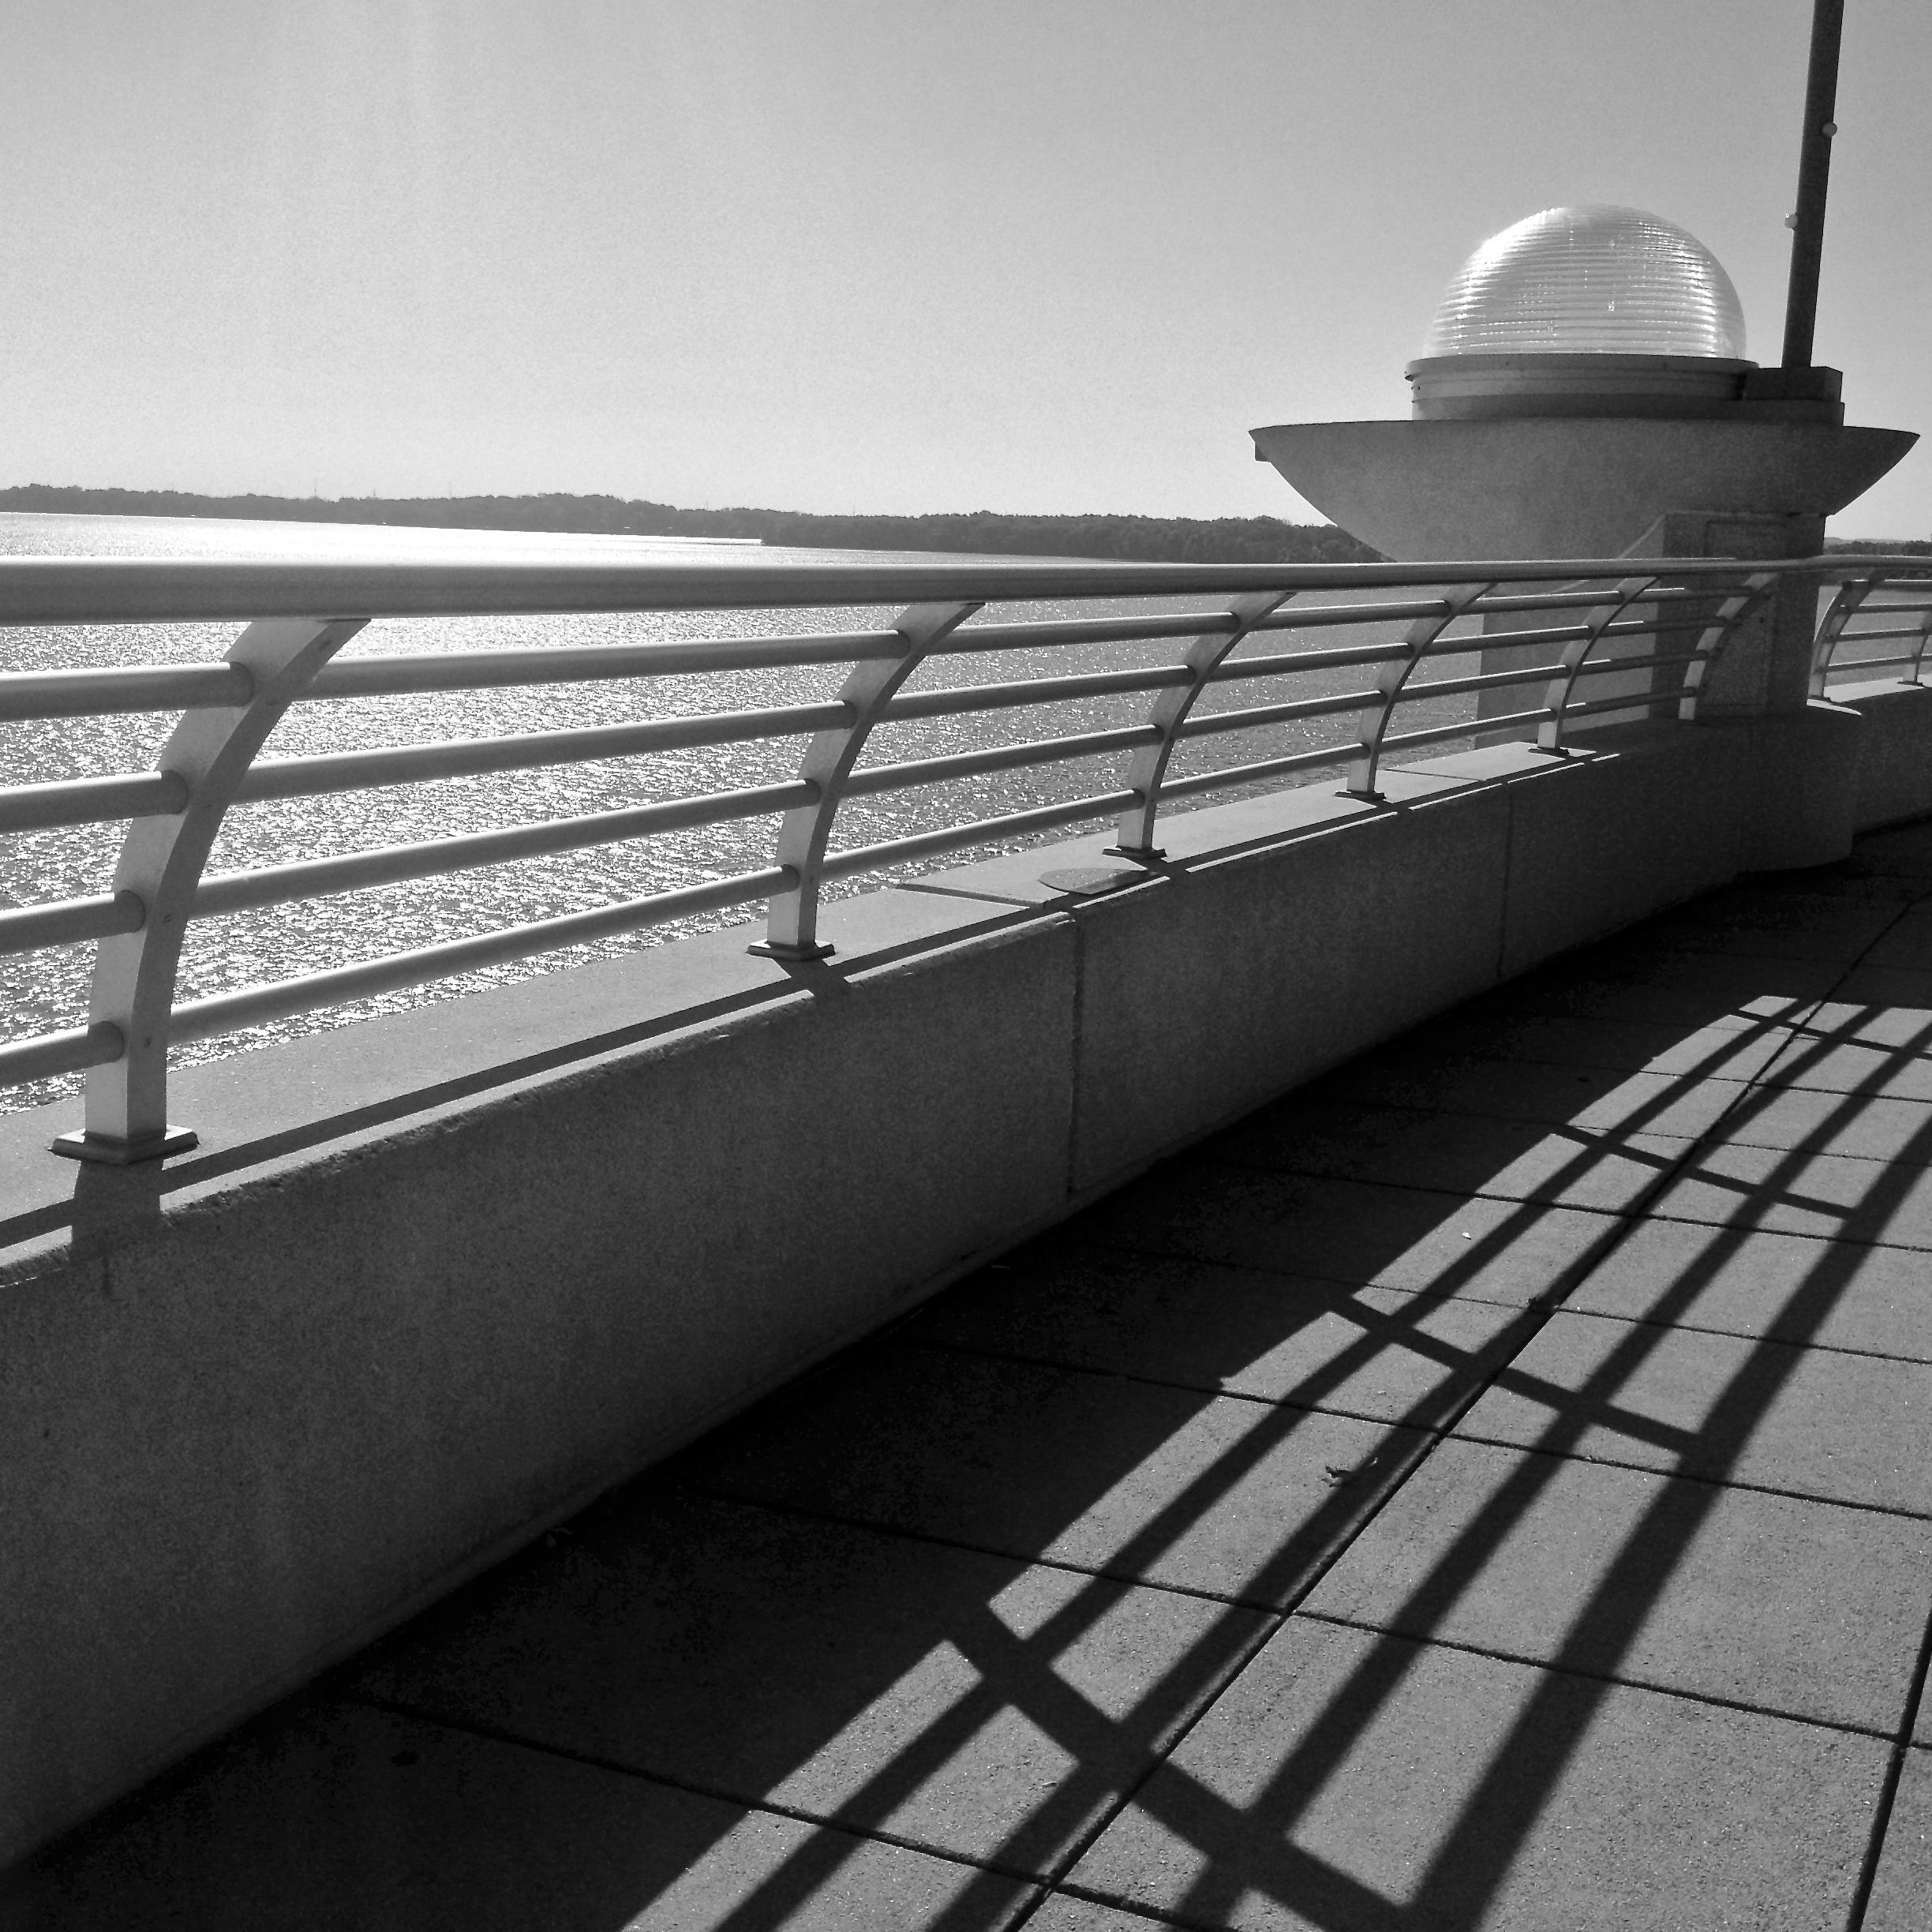 Railing.   Monona Terrace. Madison, Wisconsin.   October 2015.   © William D. Walker